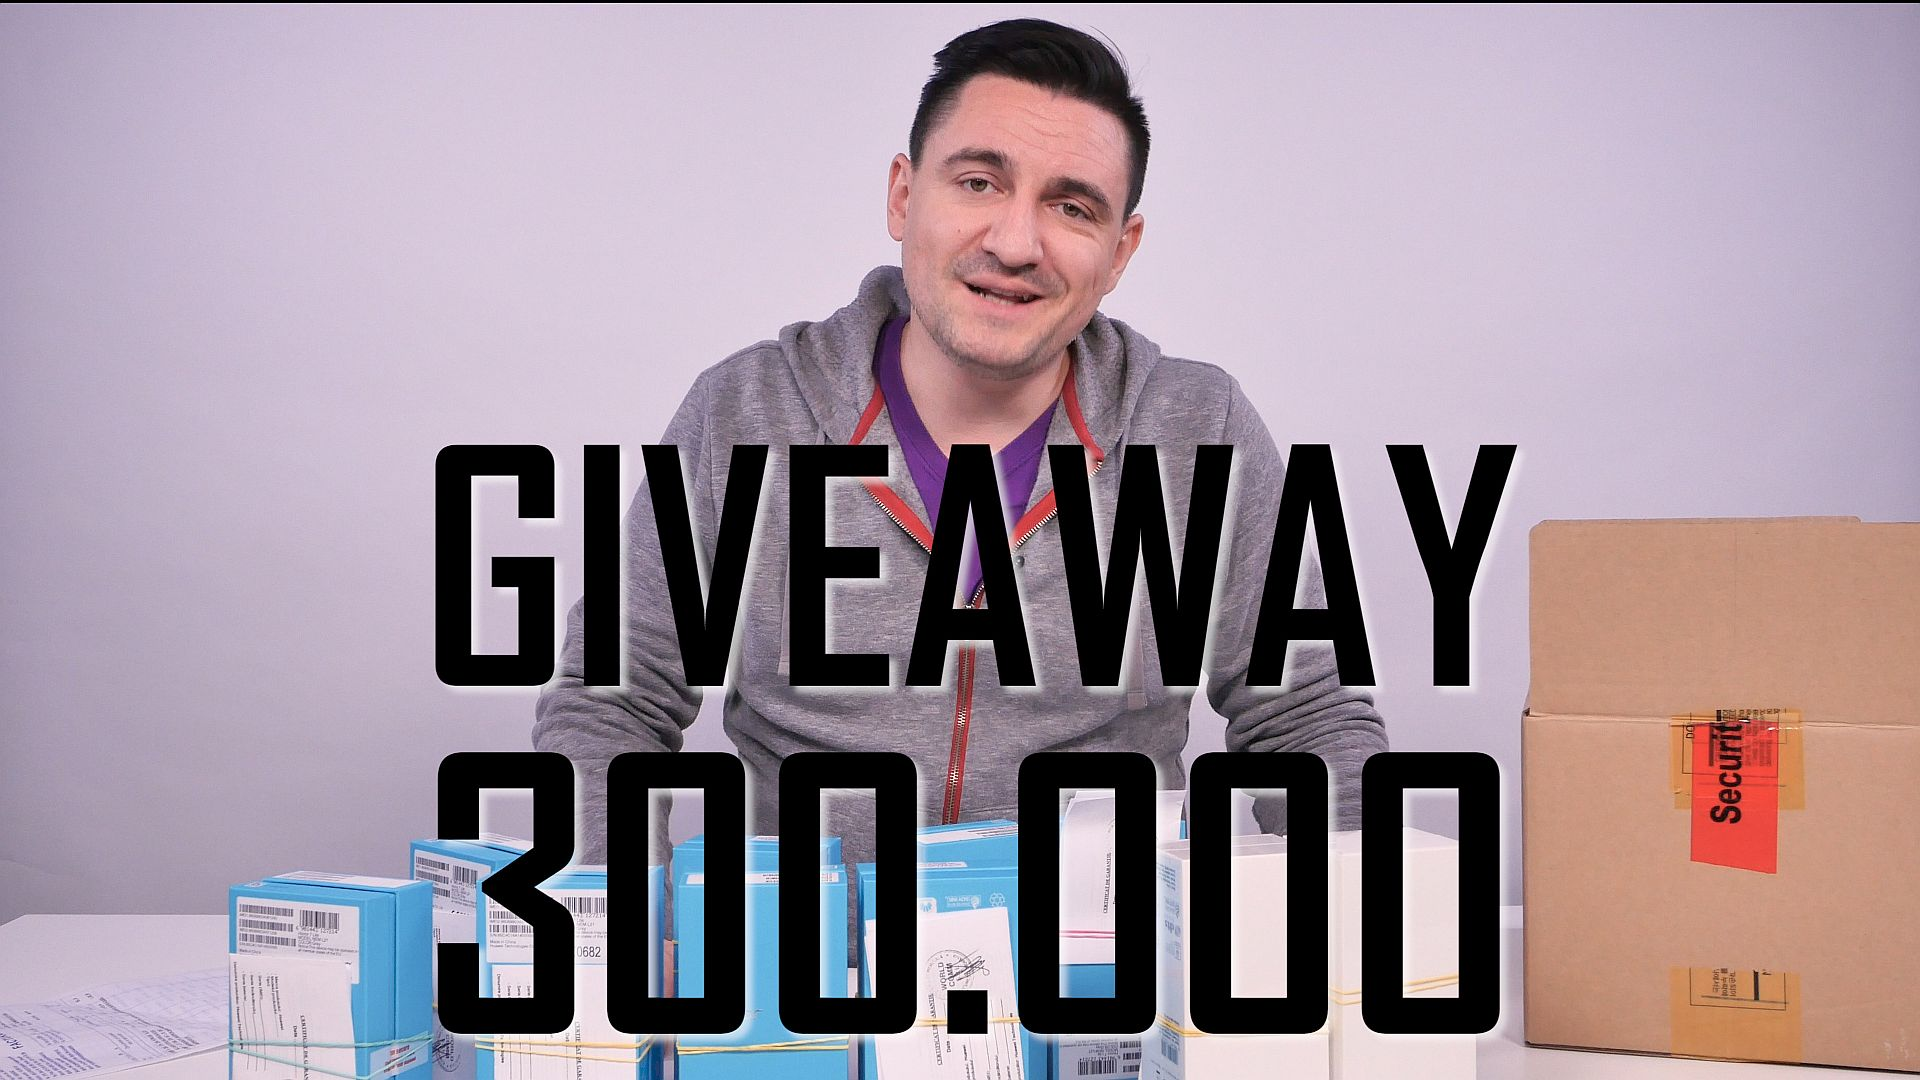 giveaway_300000_cu_text_mic